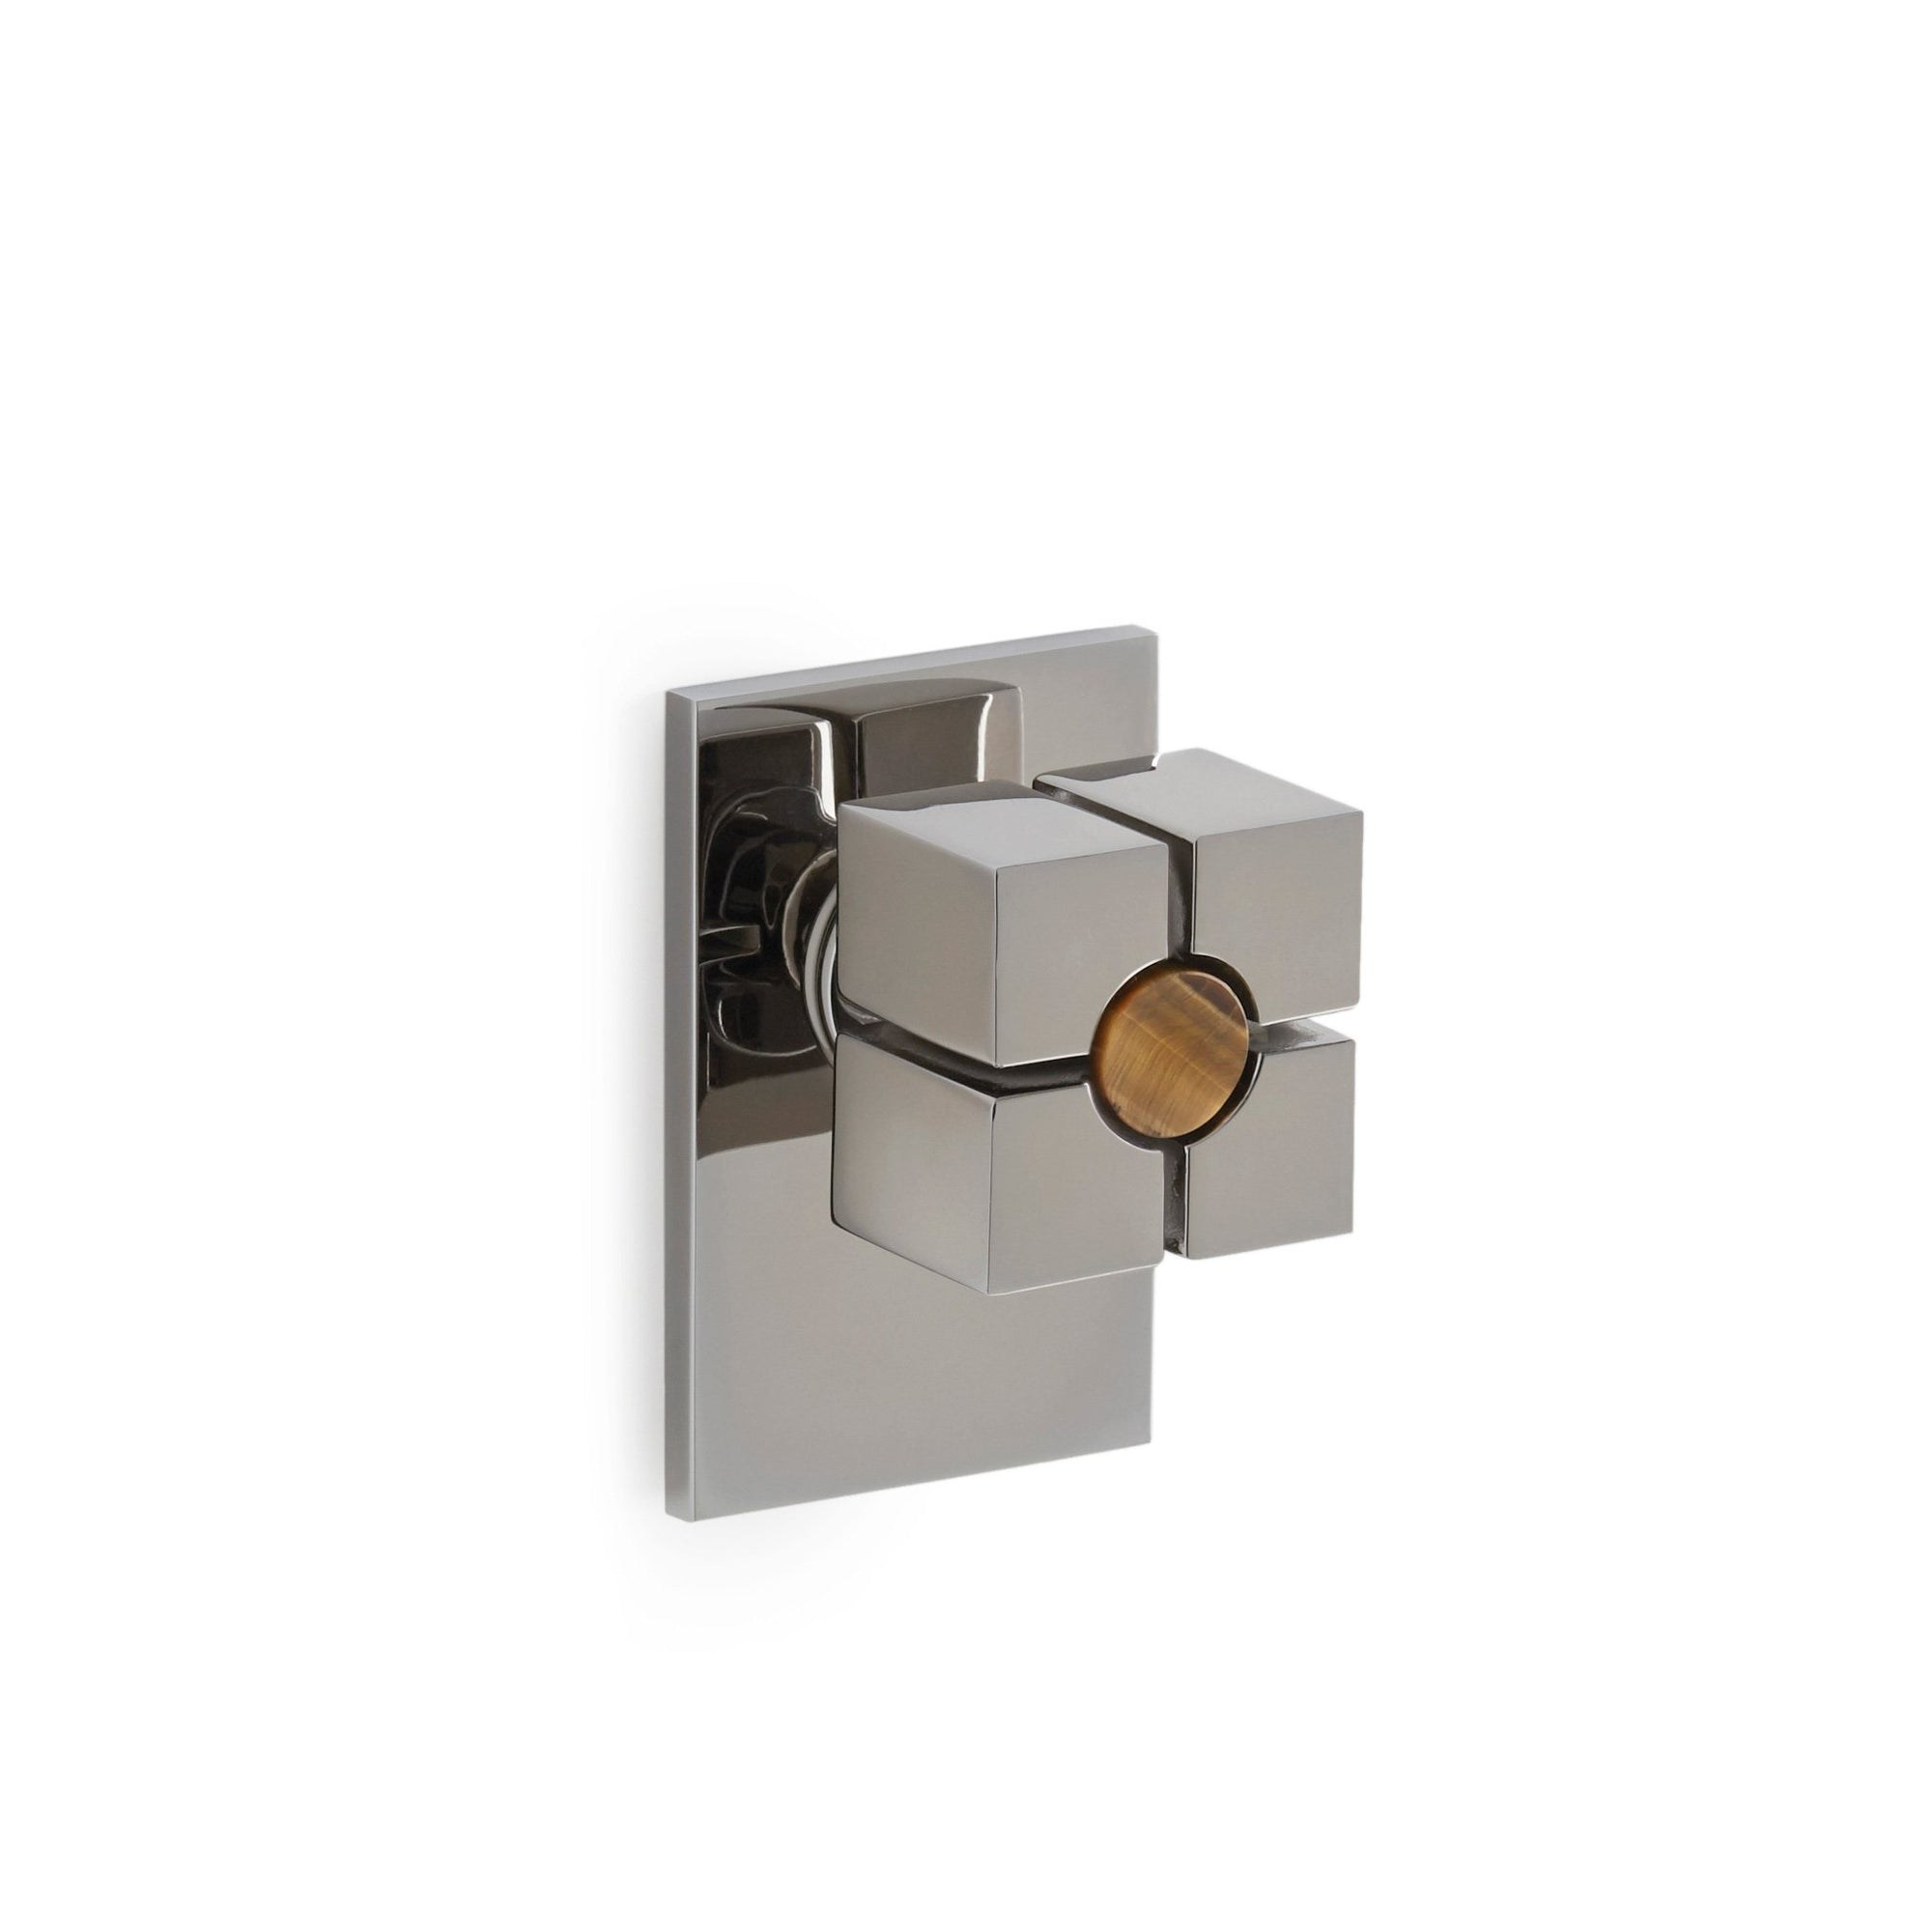 2103DOR-BRTI-CP Sherle Wagner International The Stone Insert Quad Door Knob in Polished Chrome metal finish